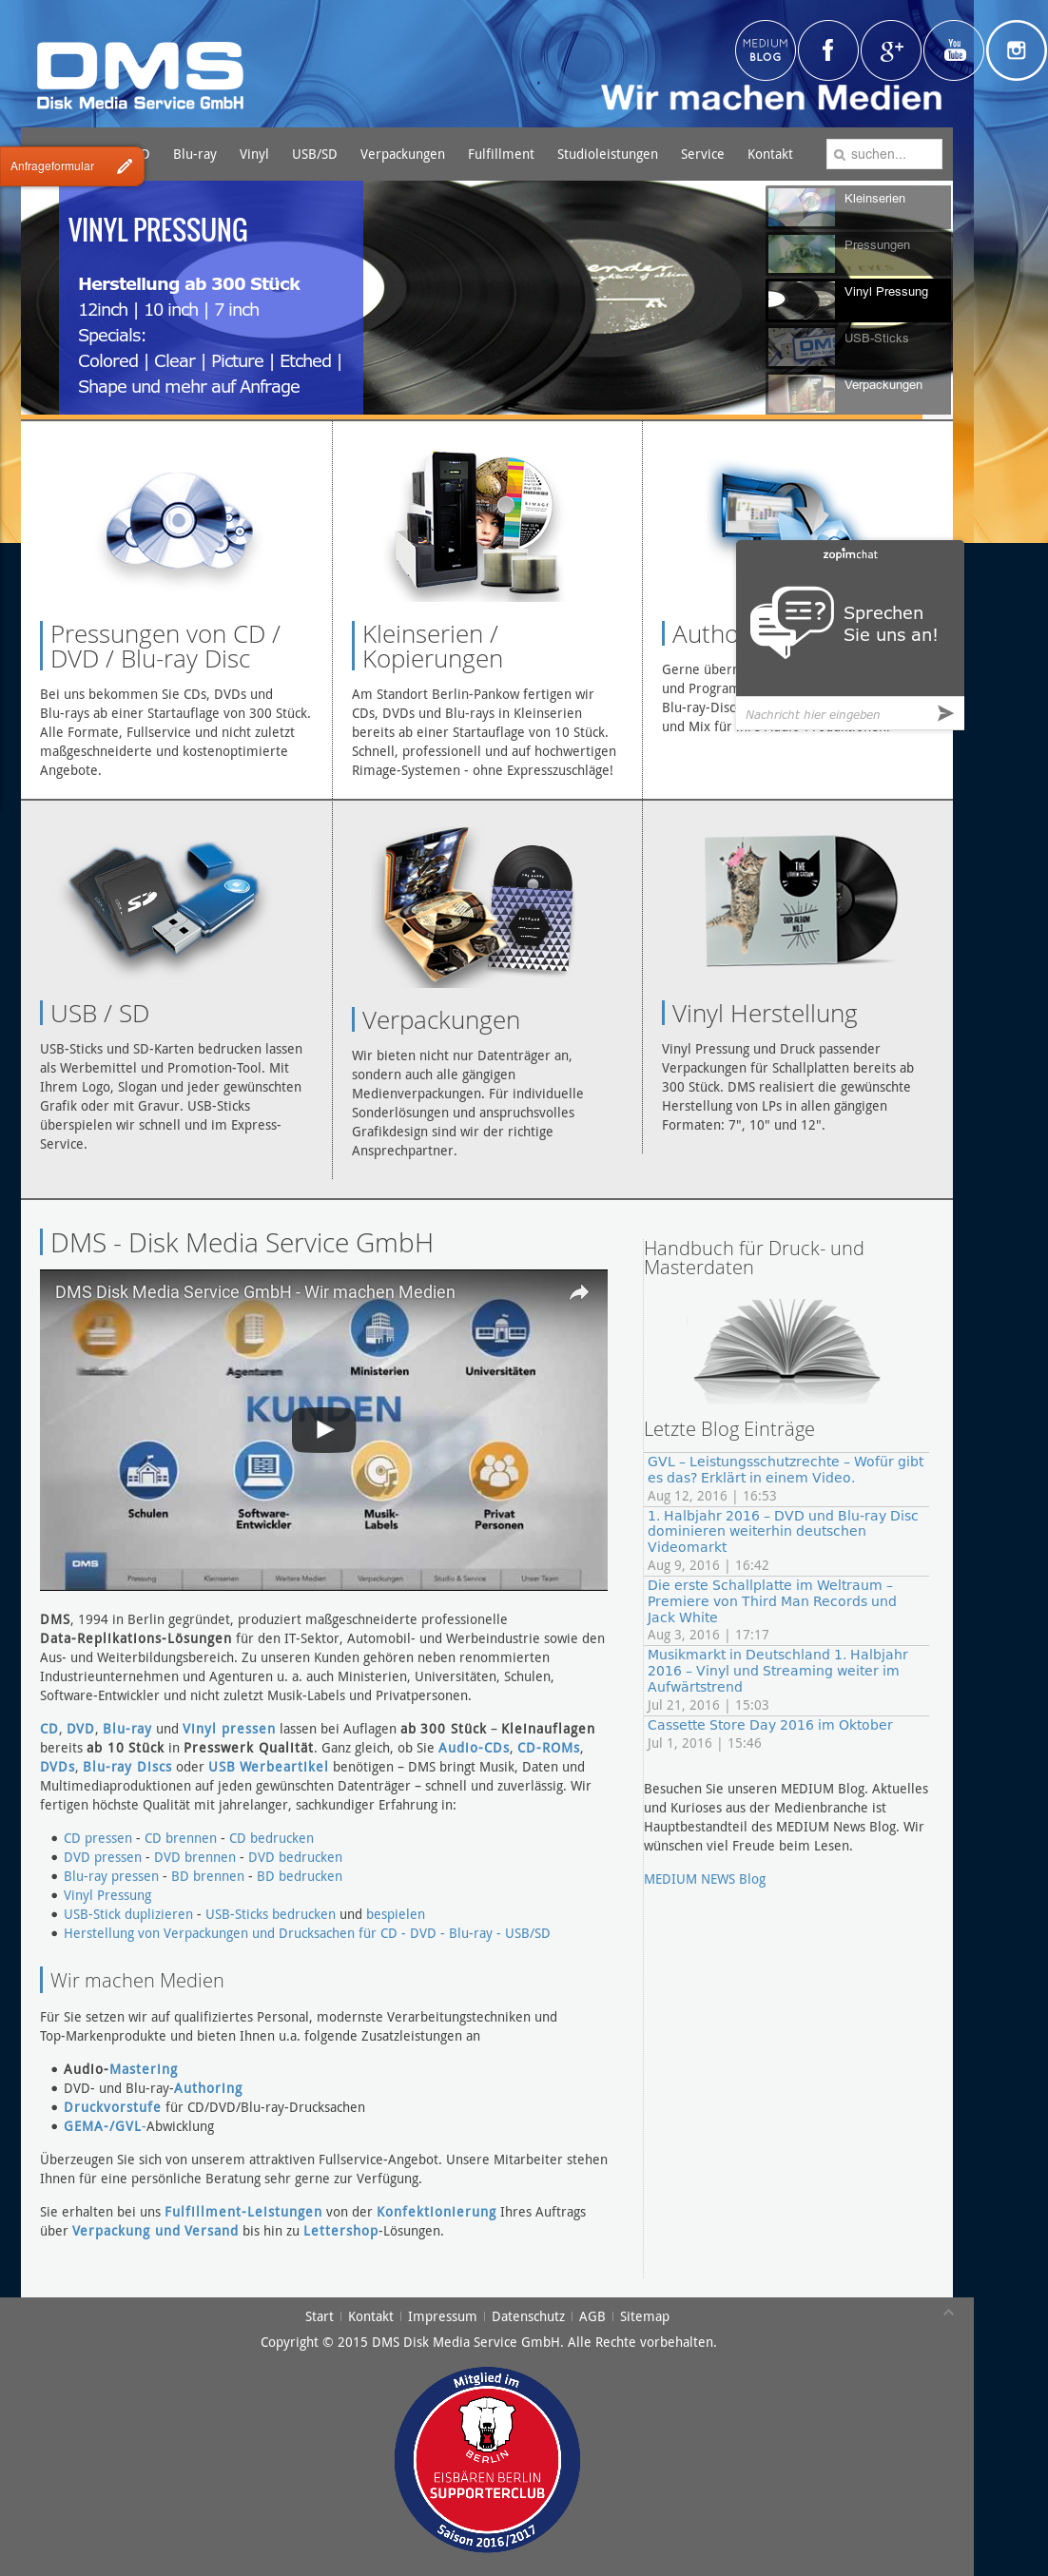 Dms Disk Media Service Competitors, Revenue and Employees - Owler ...